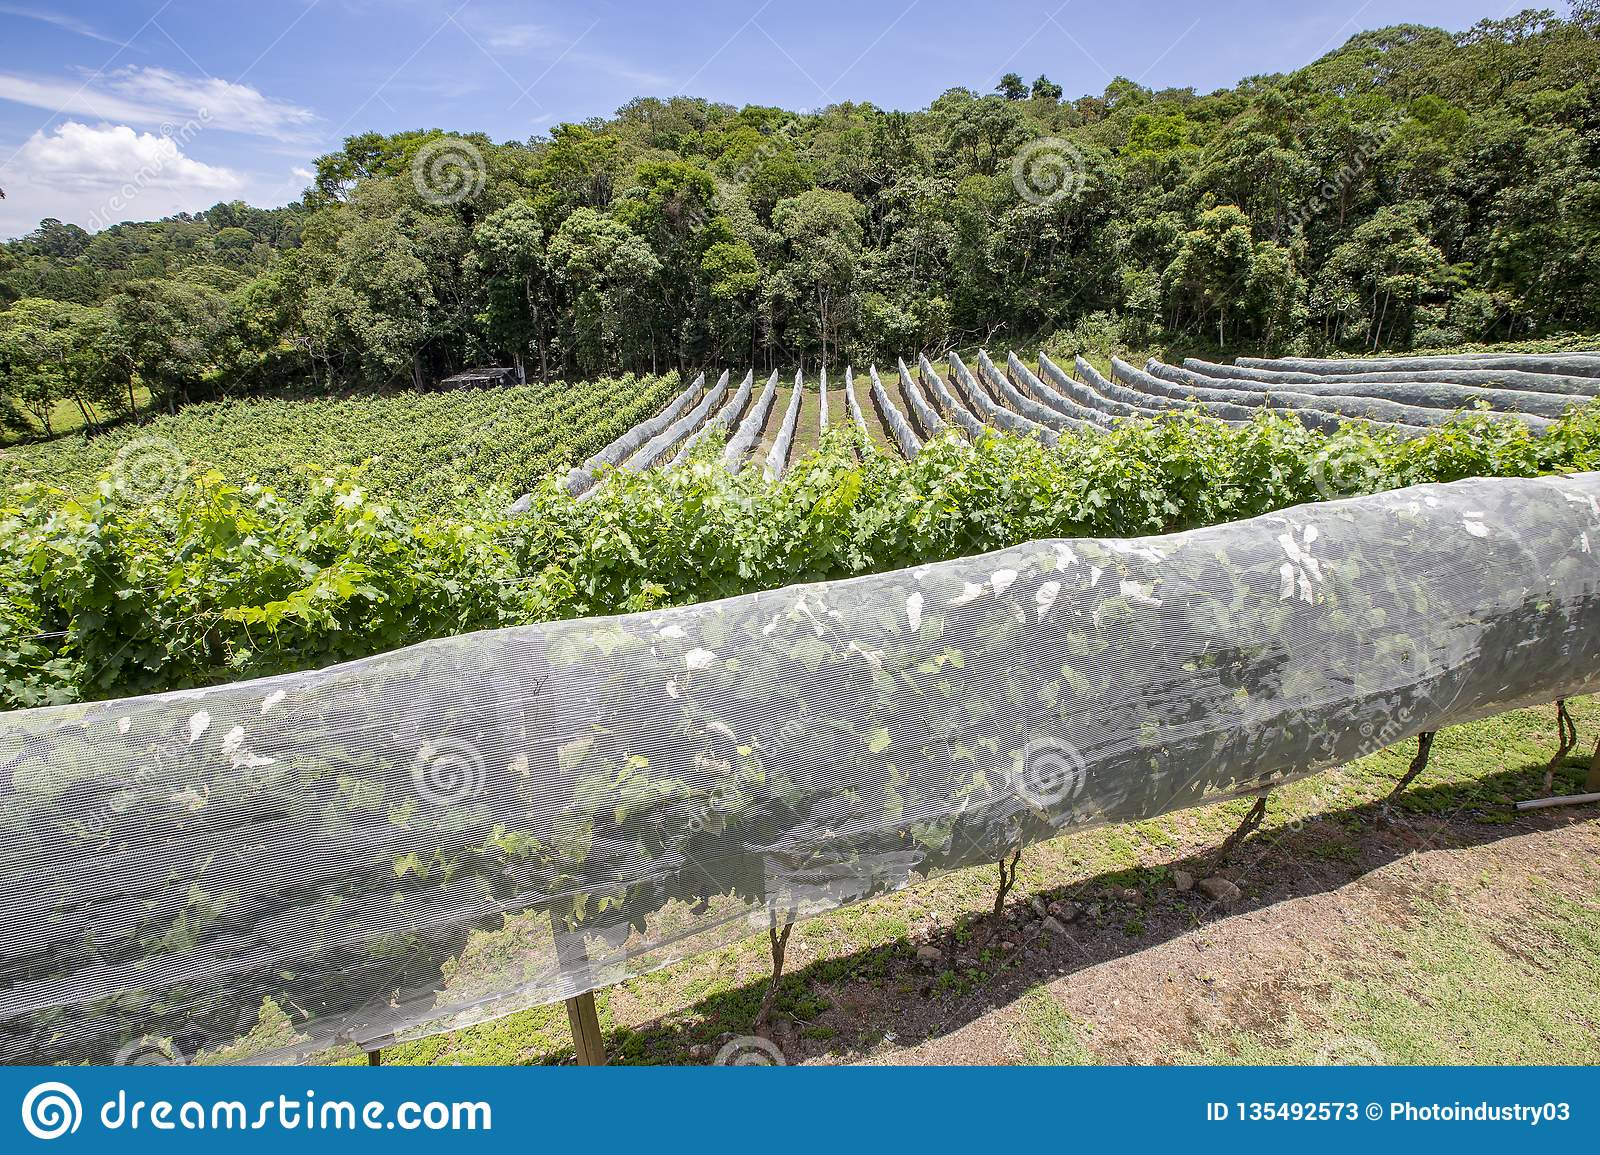 Vineyard With Vines Covered With Net Stock Image - Image of